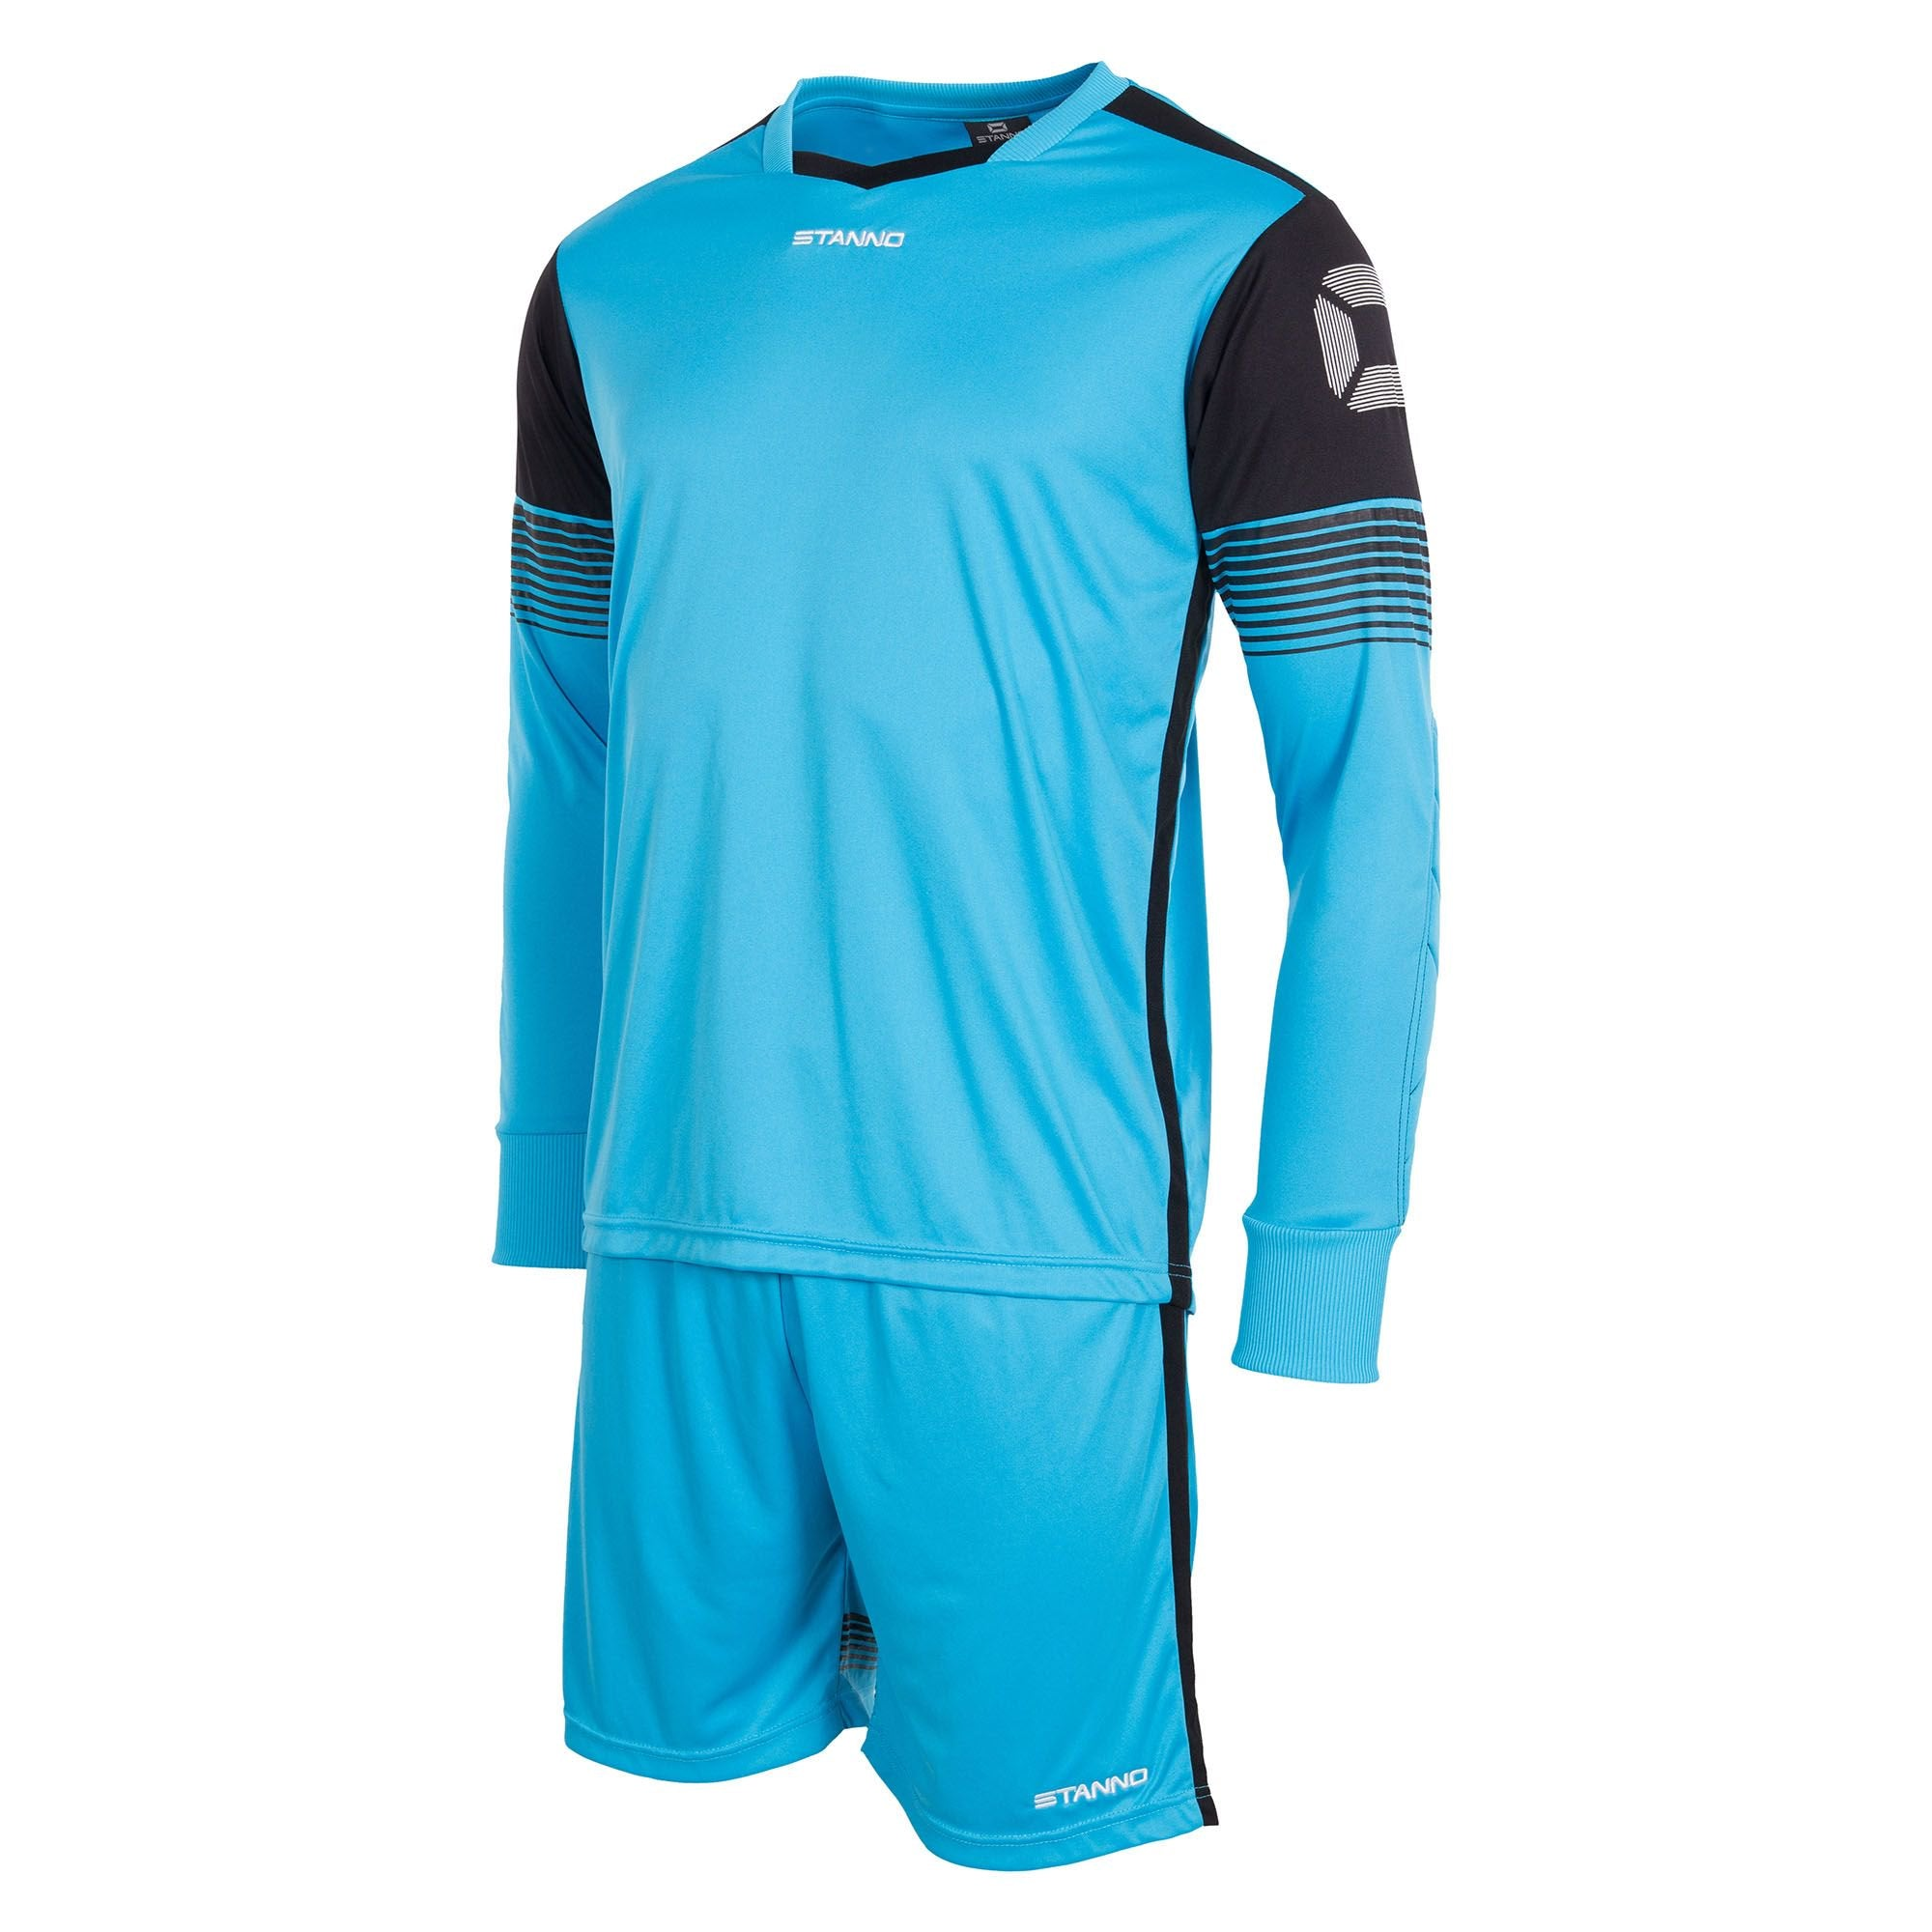 Light blue Stanno Nitro goalkeeper set of long sleeved shirt and shorts. Black panel on top of arms containing stadium logo.